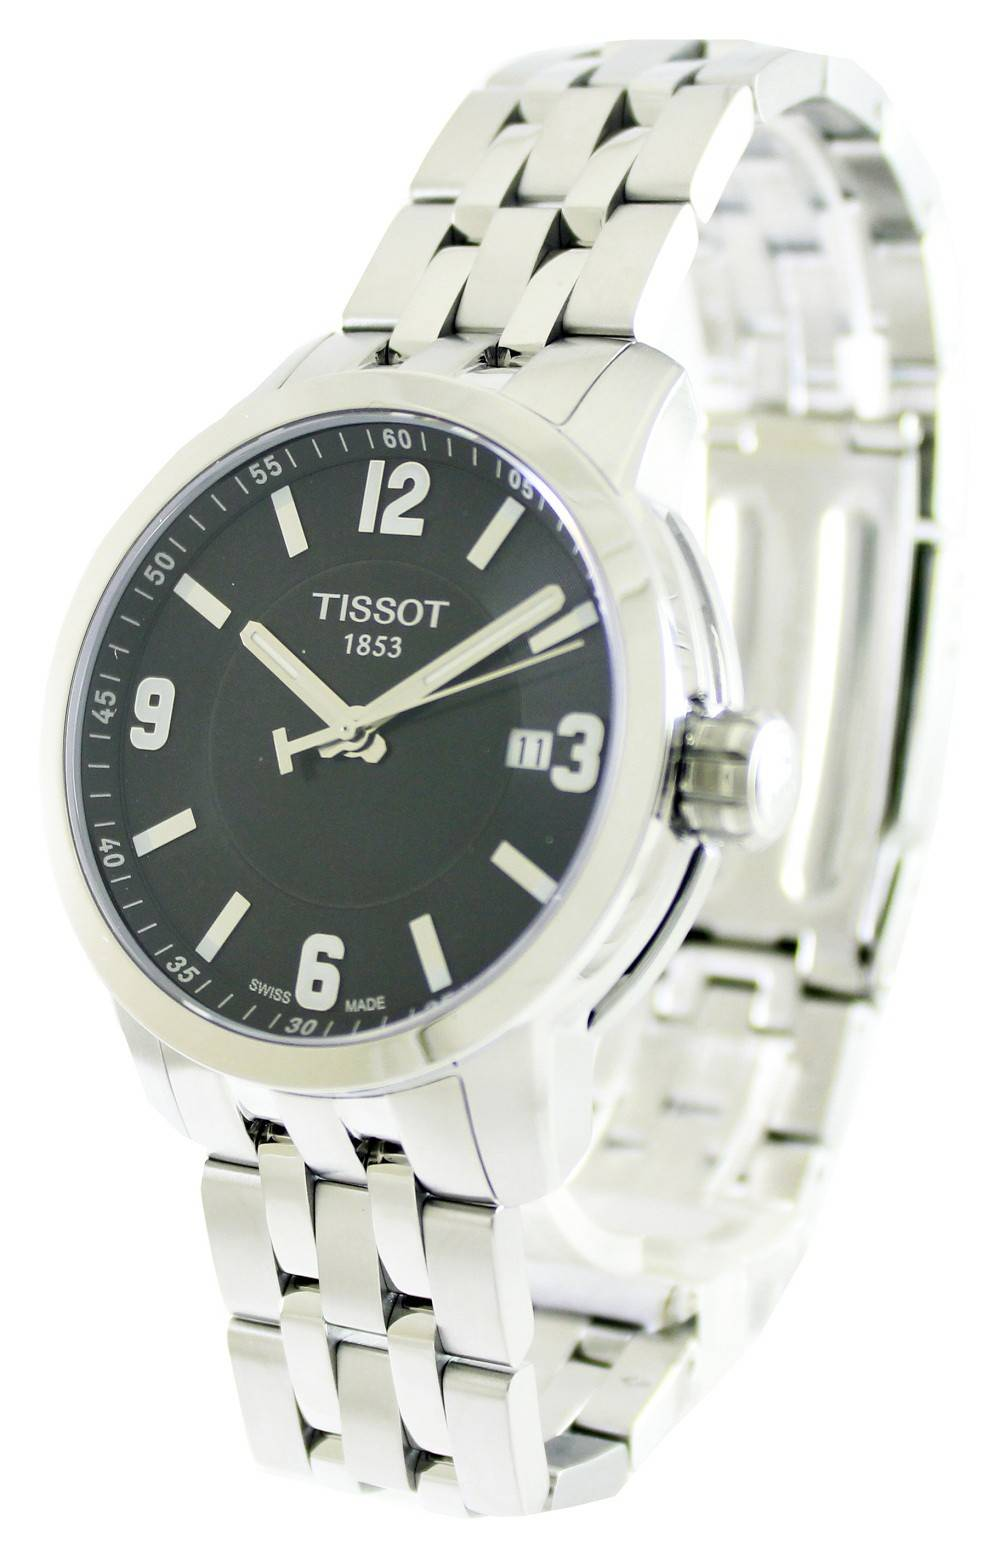 T-Sport PRC 200 Quartz  Dial T055.410.11.057.00 T0554101105700 Men's Watch